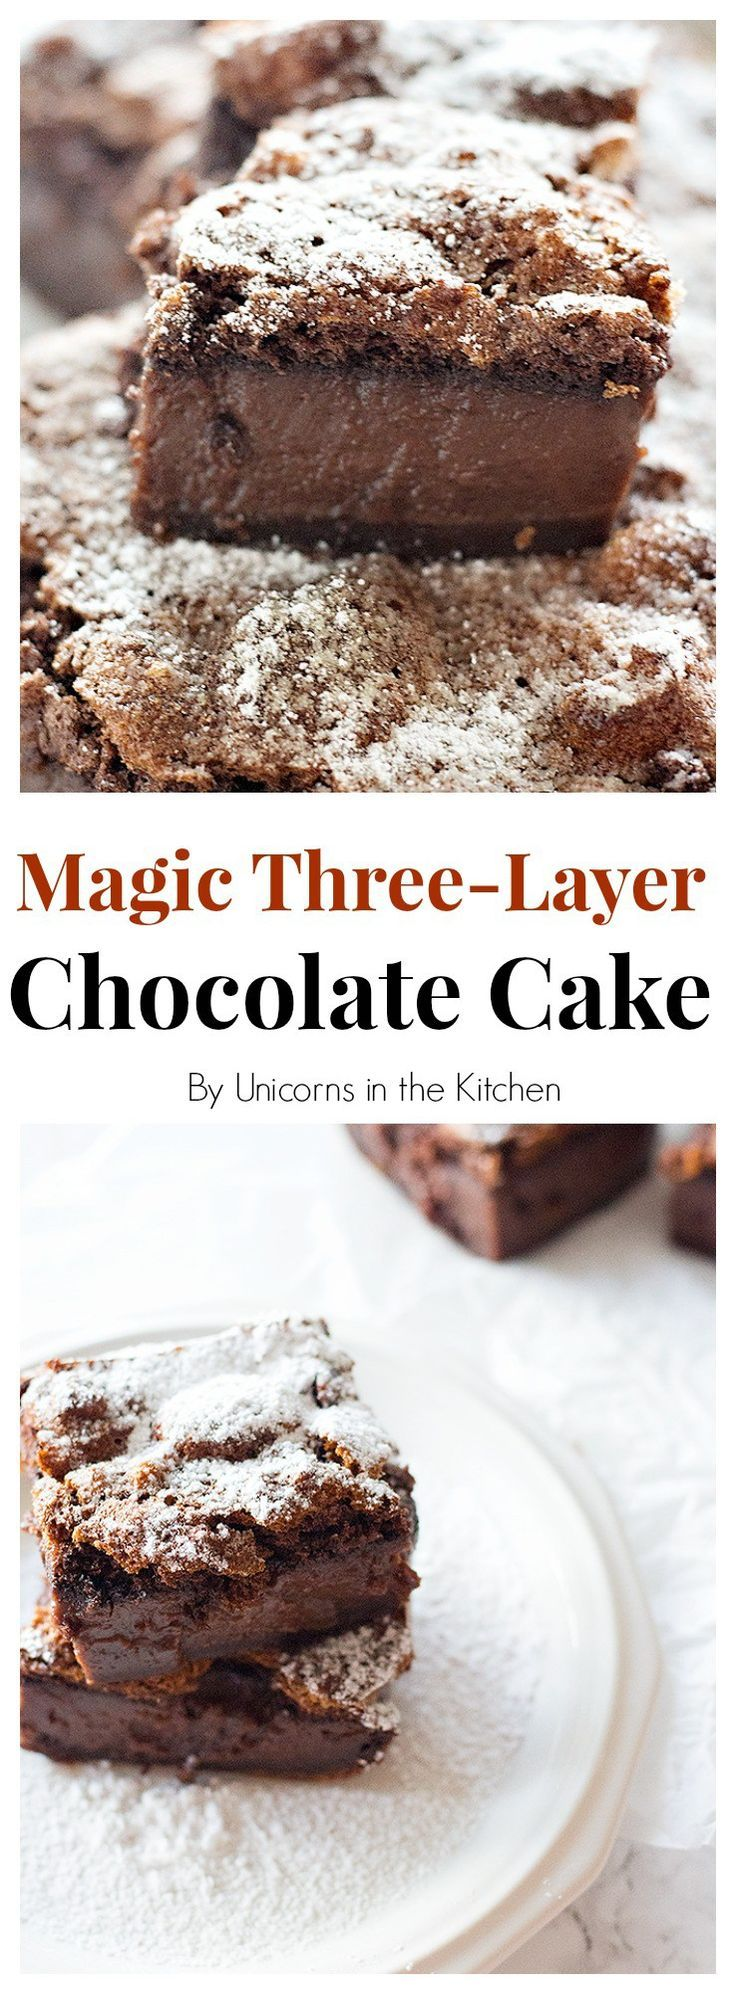 This Chocolate Magic Custard Cake has three layers of cake, custard, and souffle, all made from one batter. It satisfies any chocolate cravings!